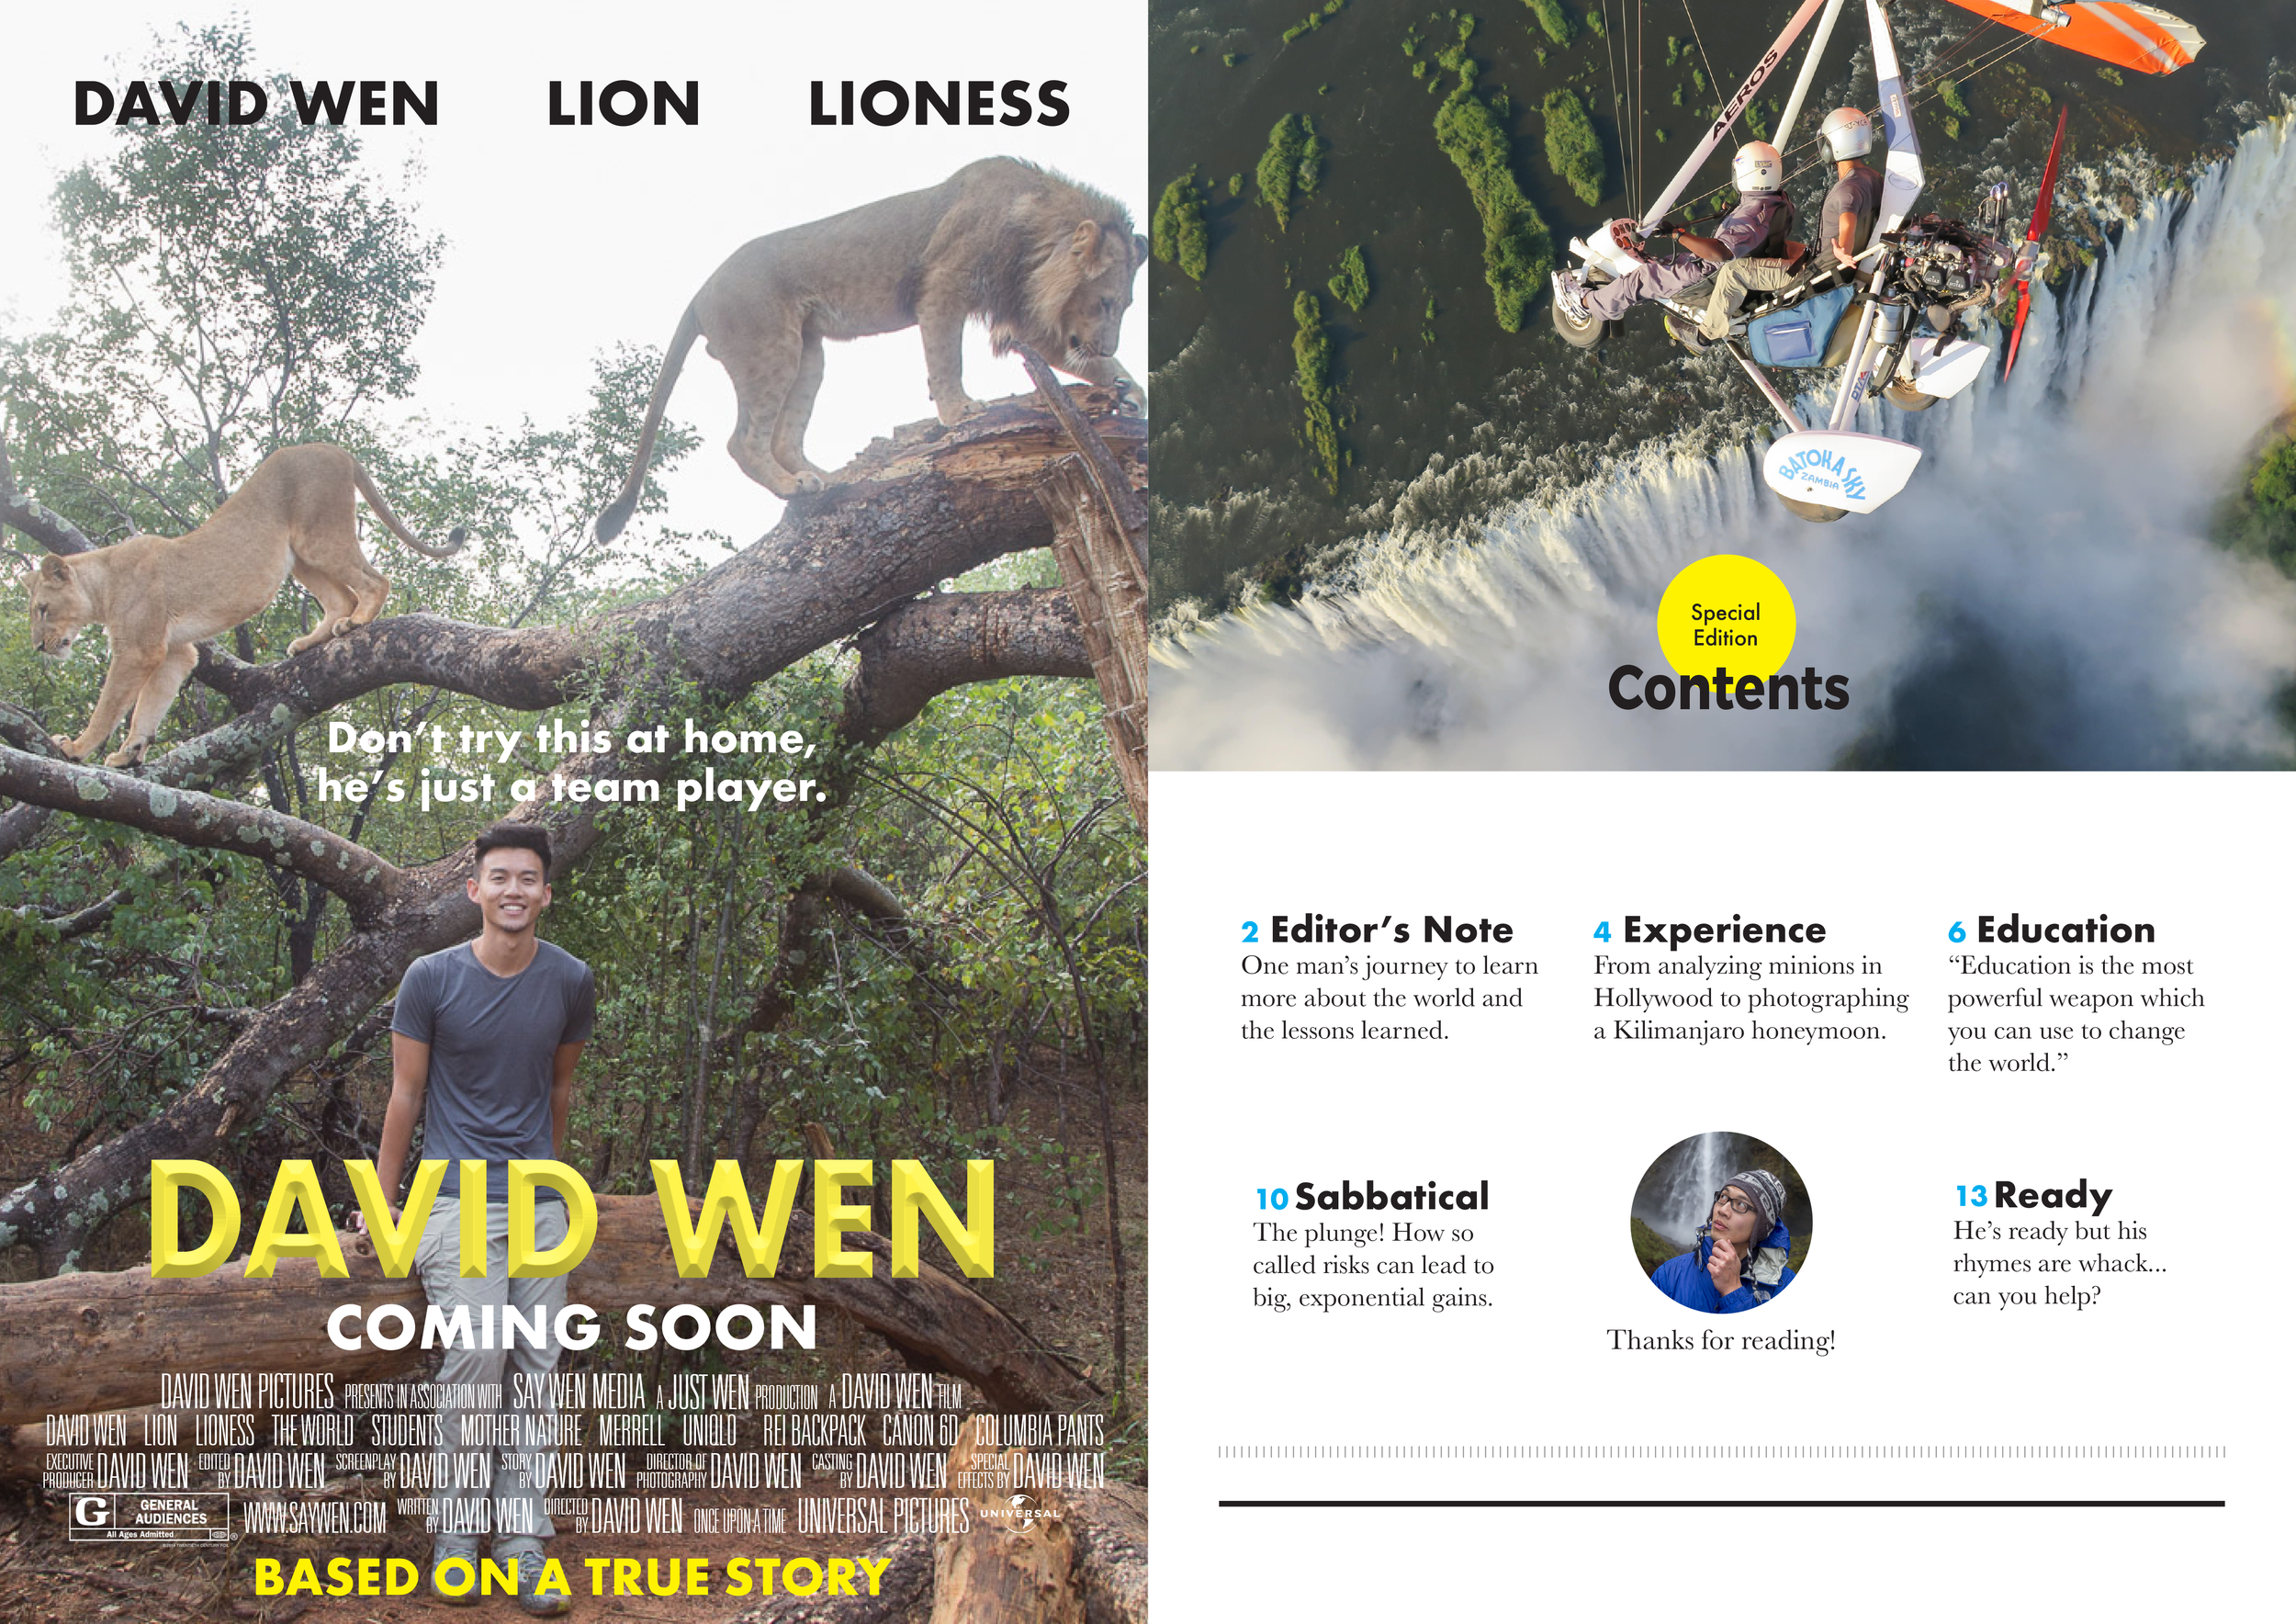 David-Wen-Resume-Special-Edition-2.png